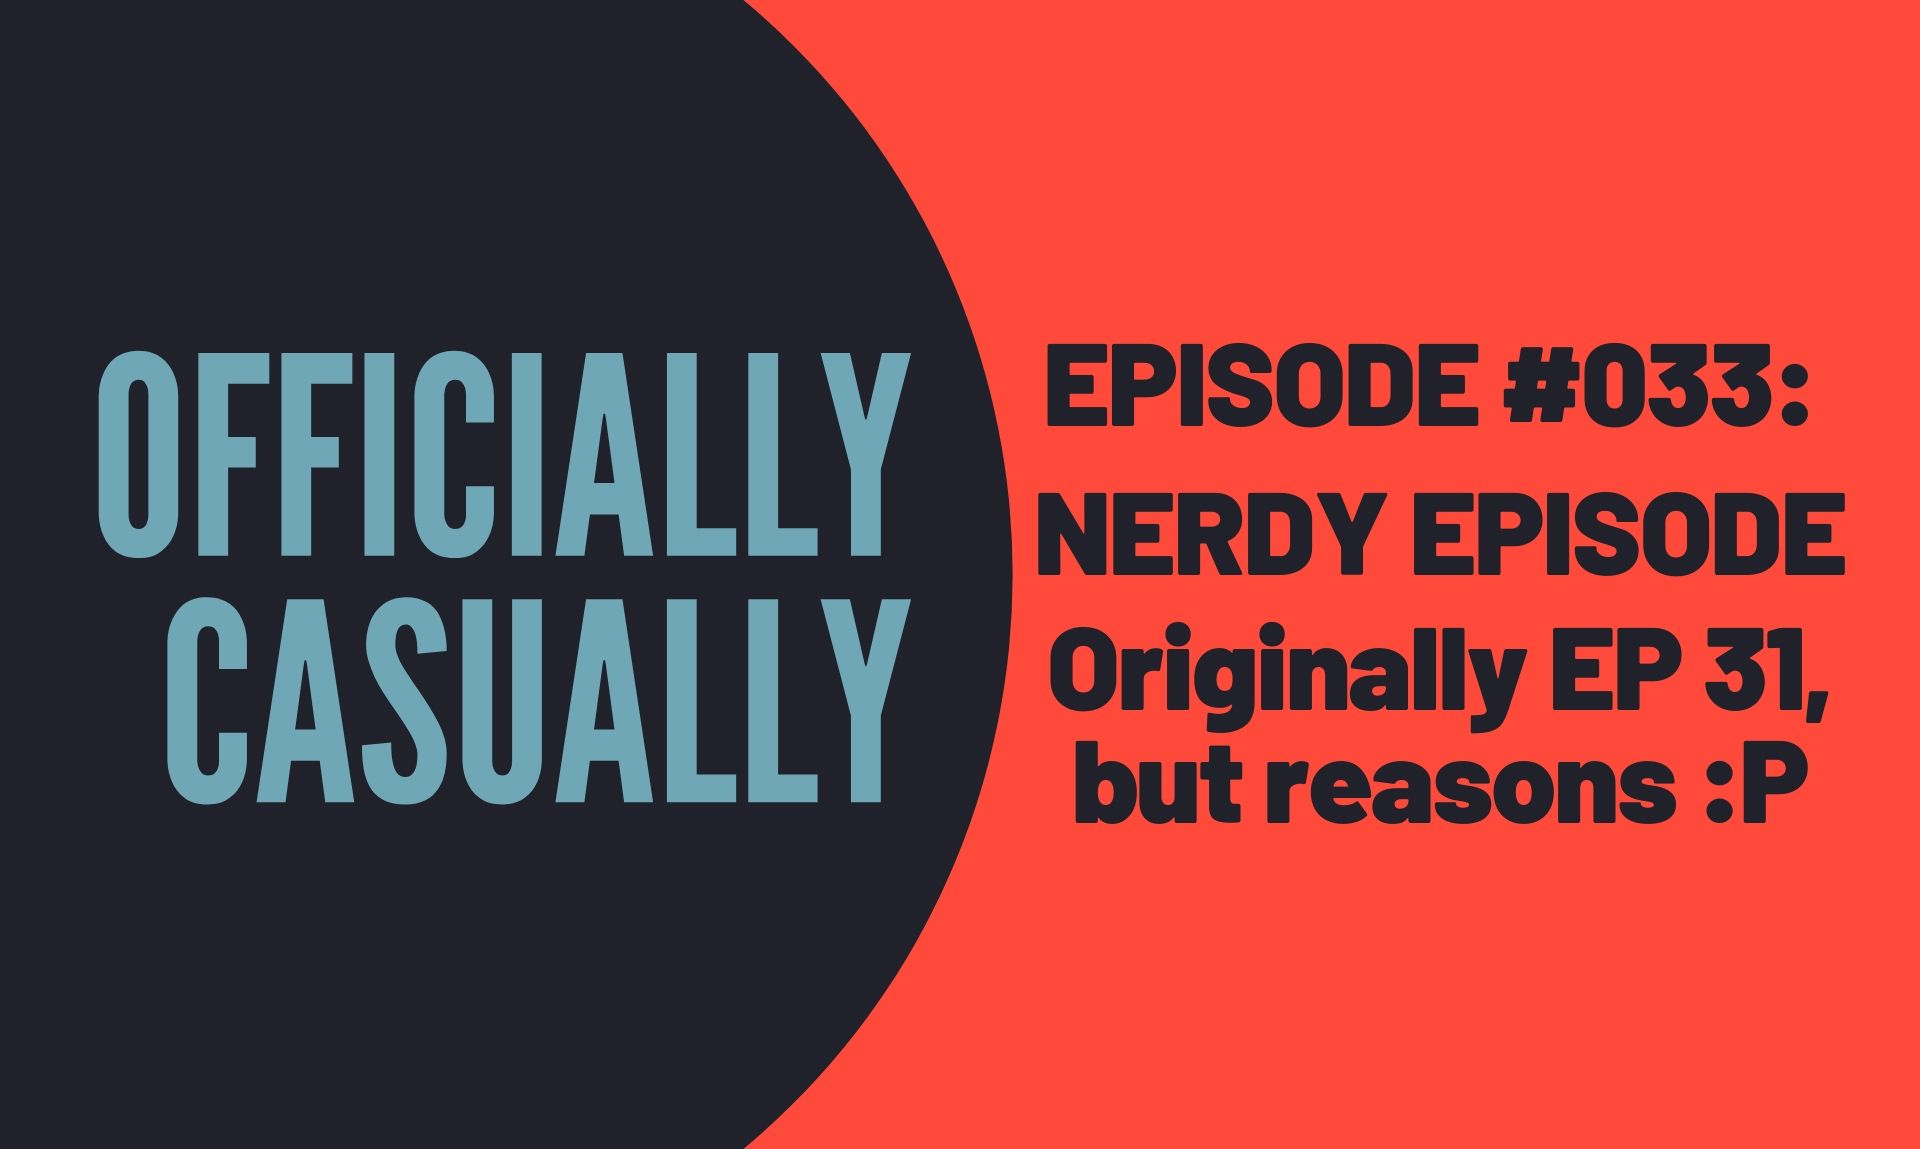 EPISODE #033: NERDY EPISODEOriginally EP 31,but reasons :P